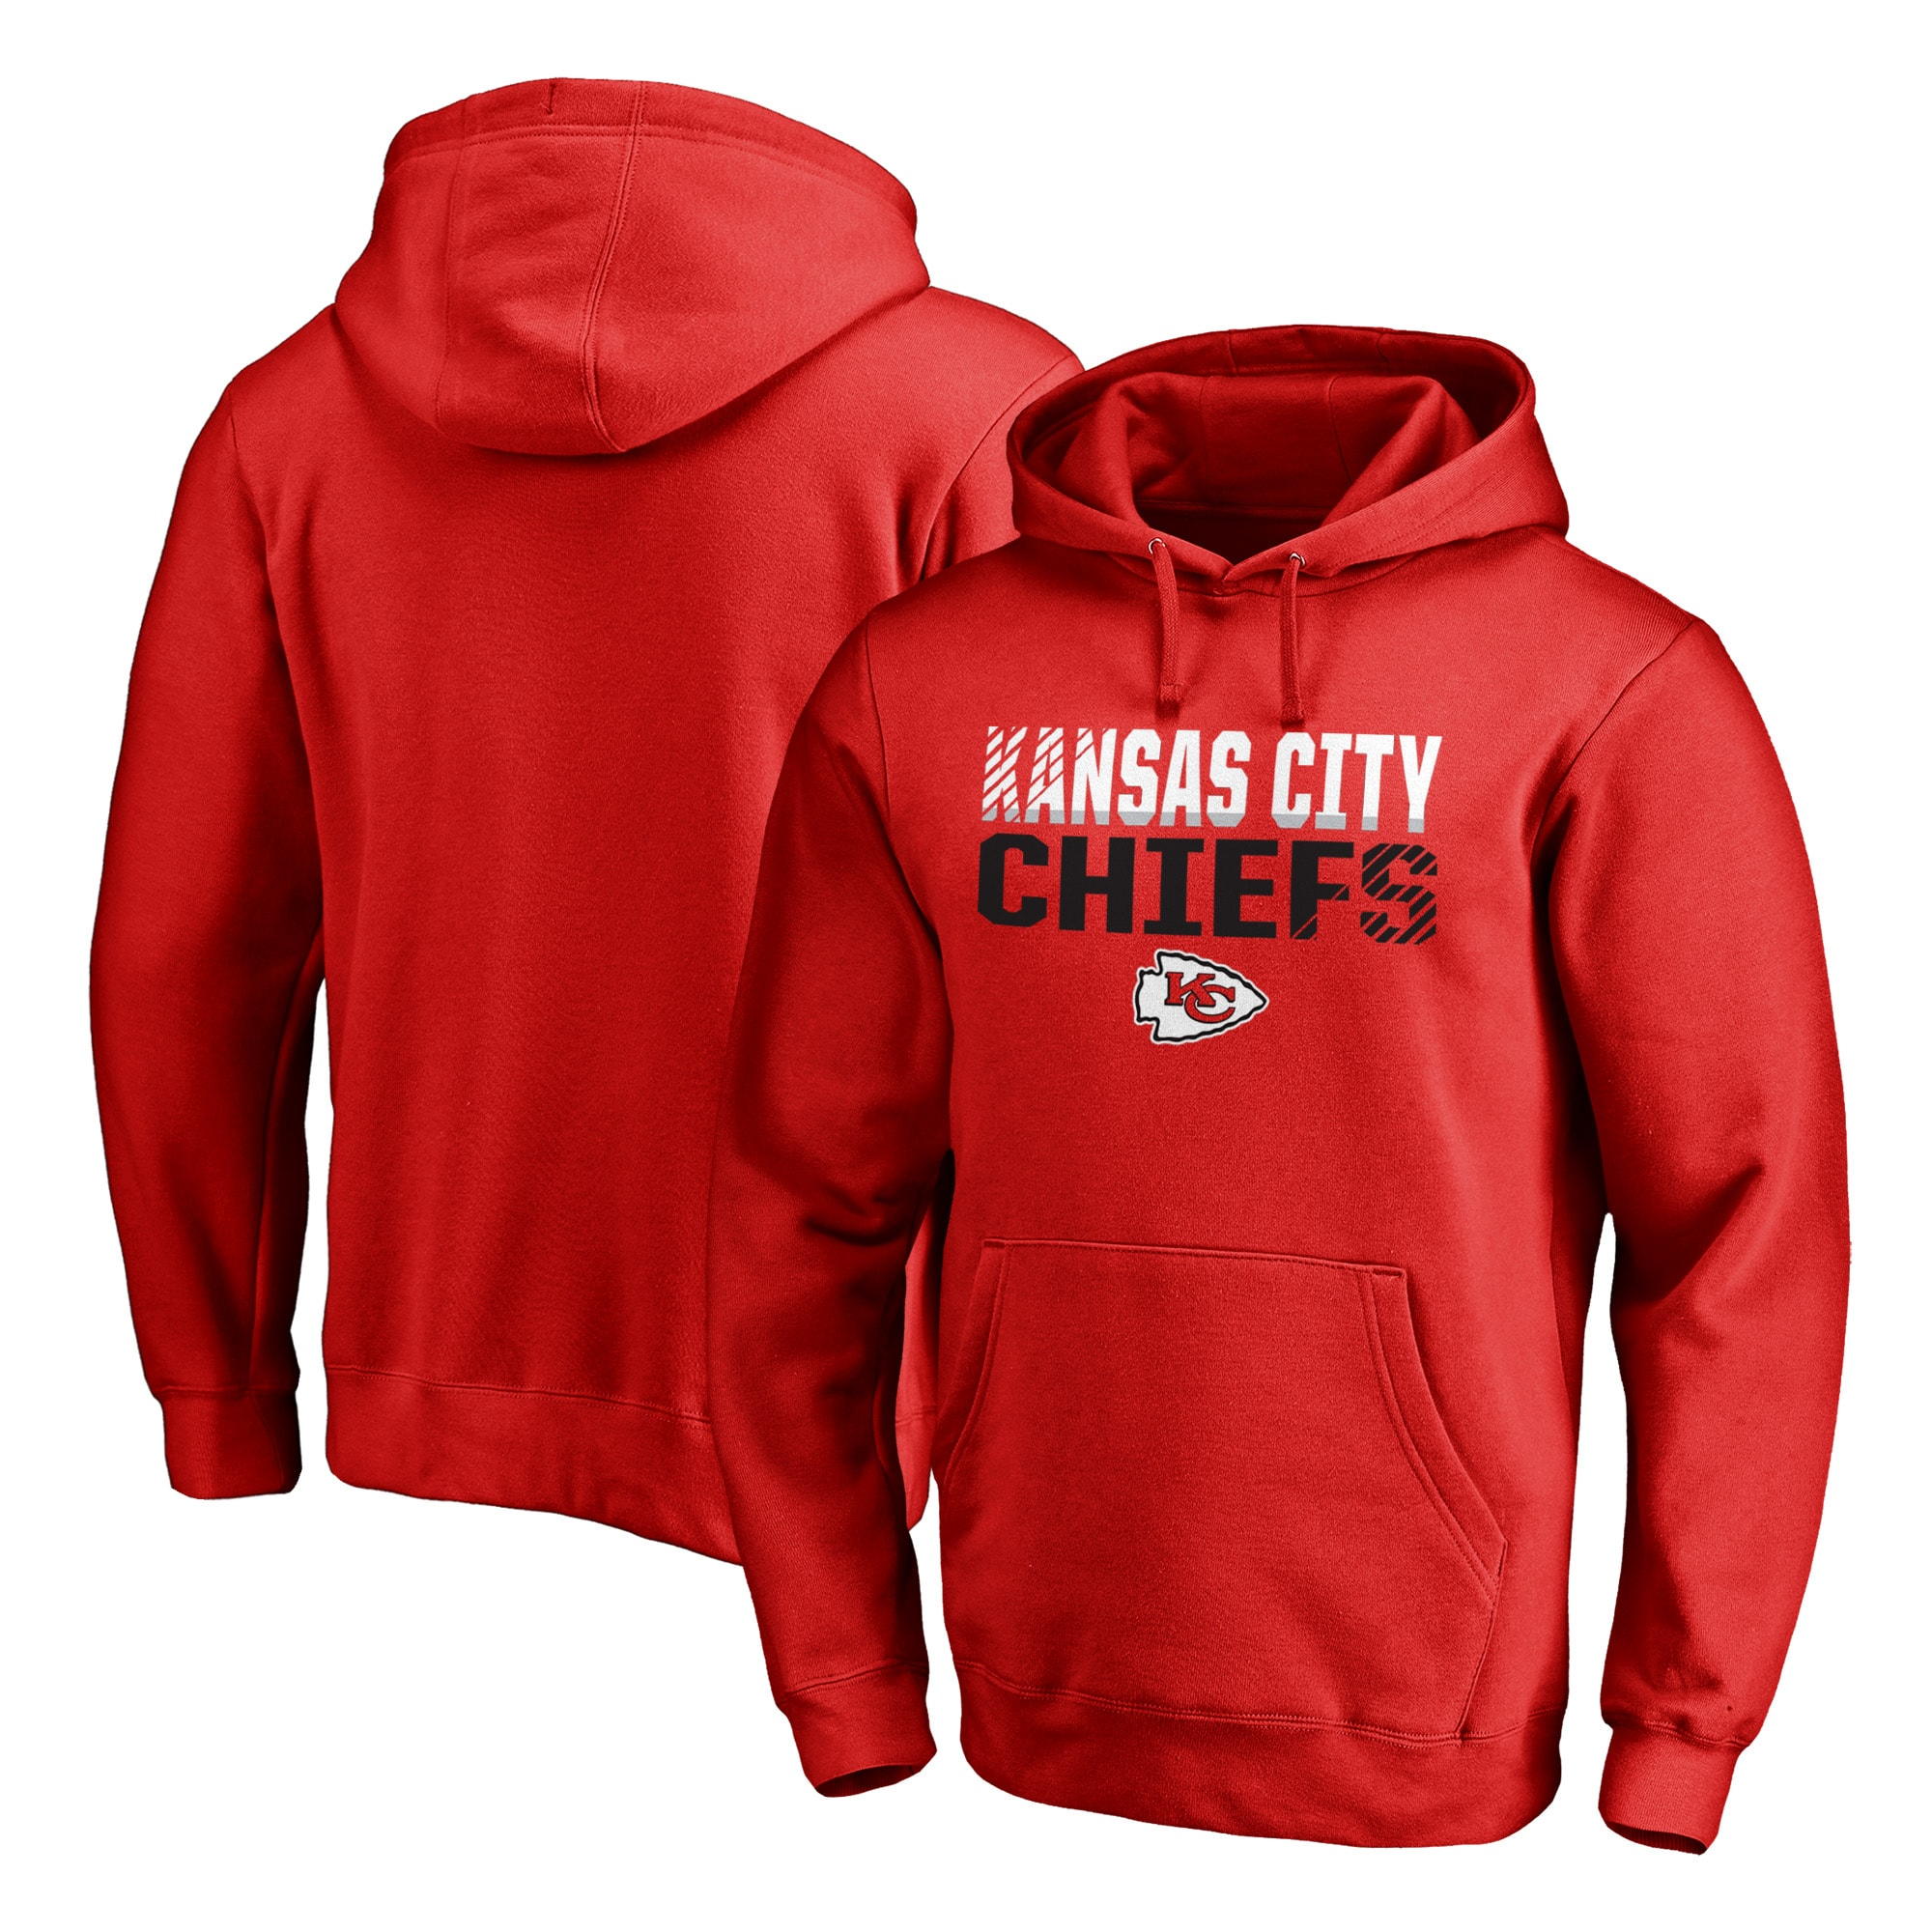 Kansas City Chiefs NFL Pro Line by Fanatics Branded Iconic Collection Fade Out Pullover Hoodie - Red